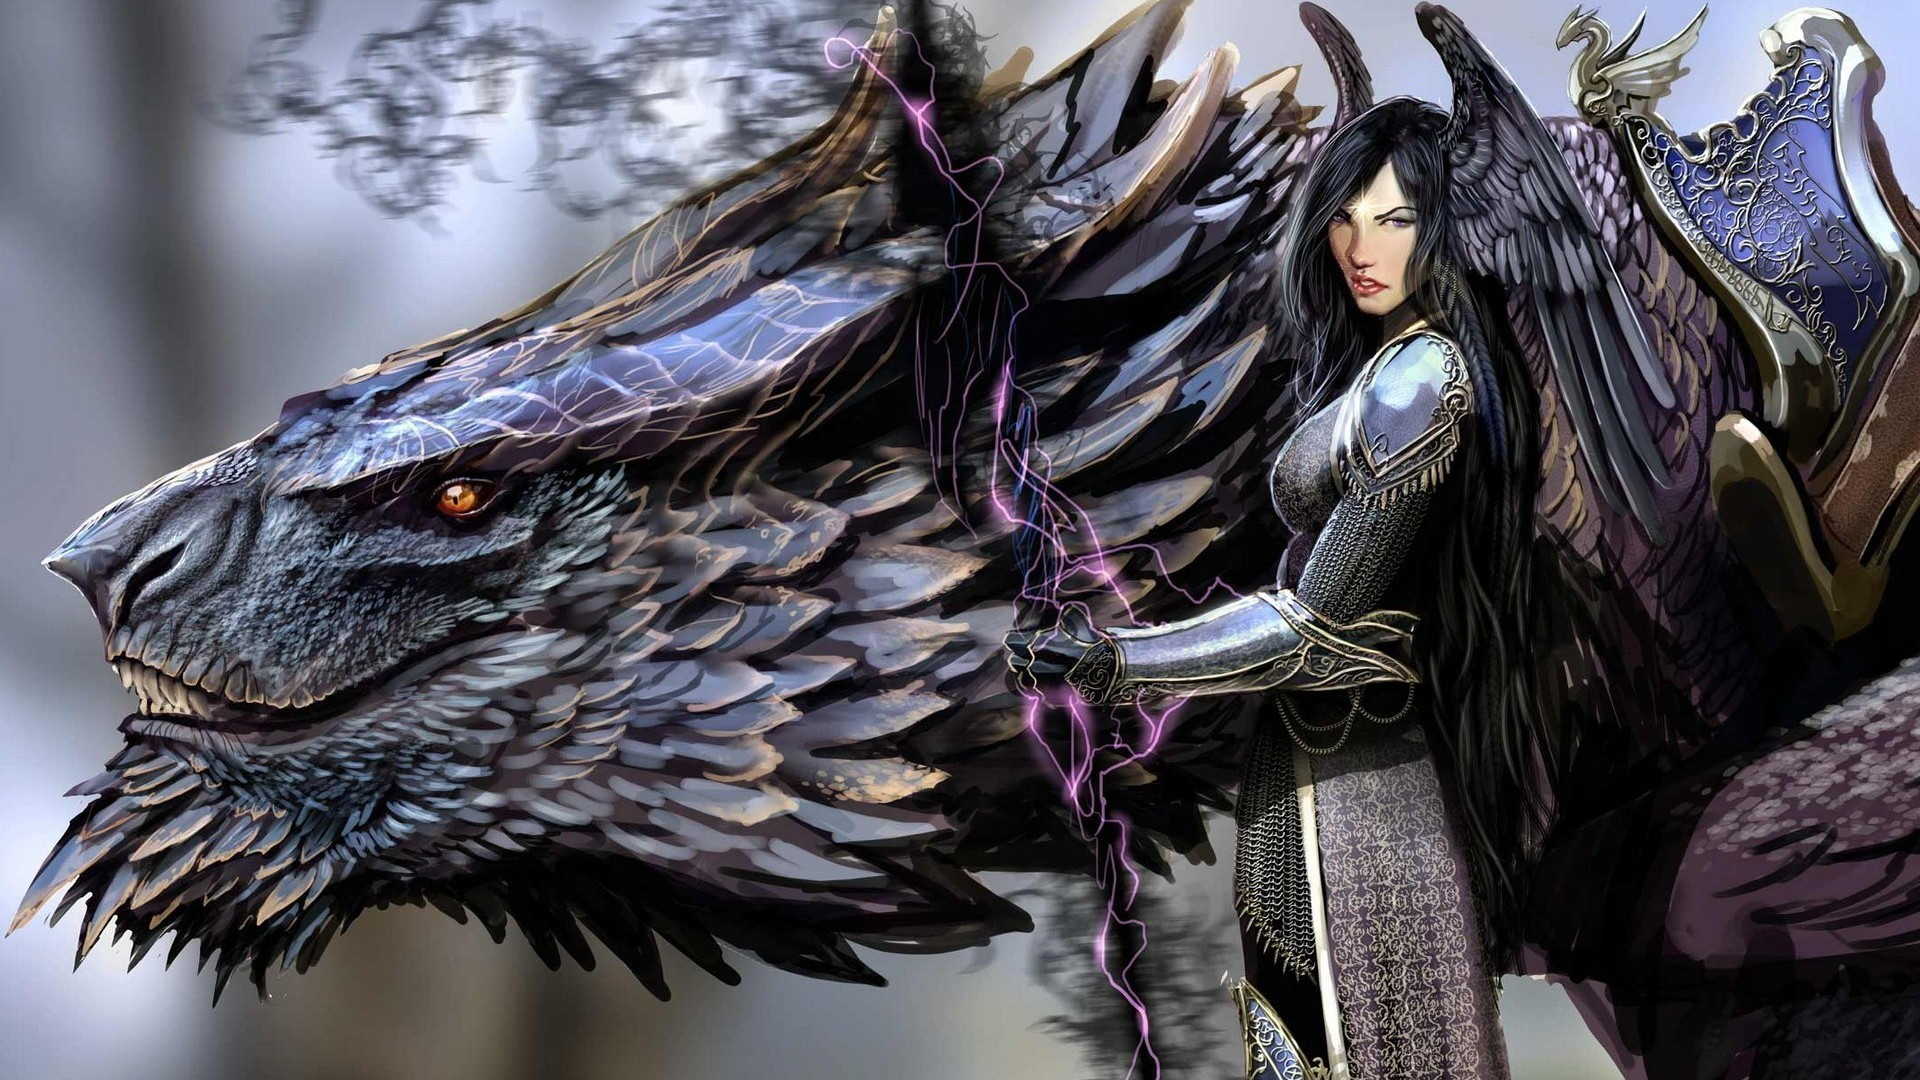 Download Black Dragons Wallpaper 32 Wallpaper Background Hd and HQ Pictures  – megahdwall.com